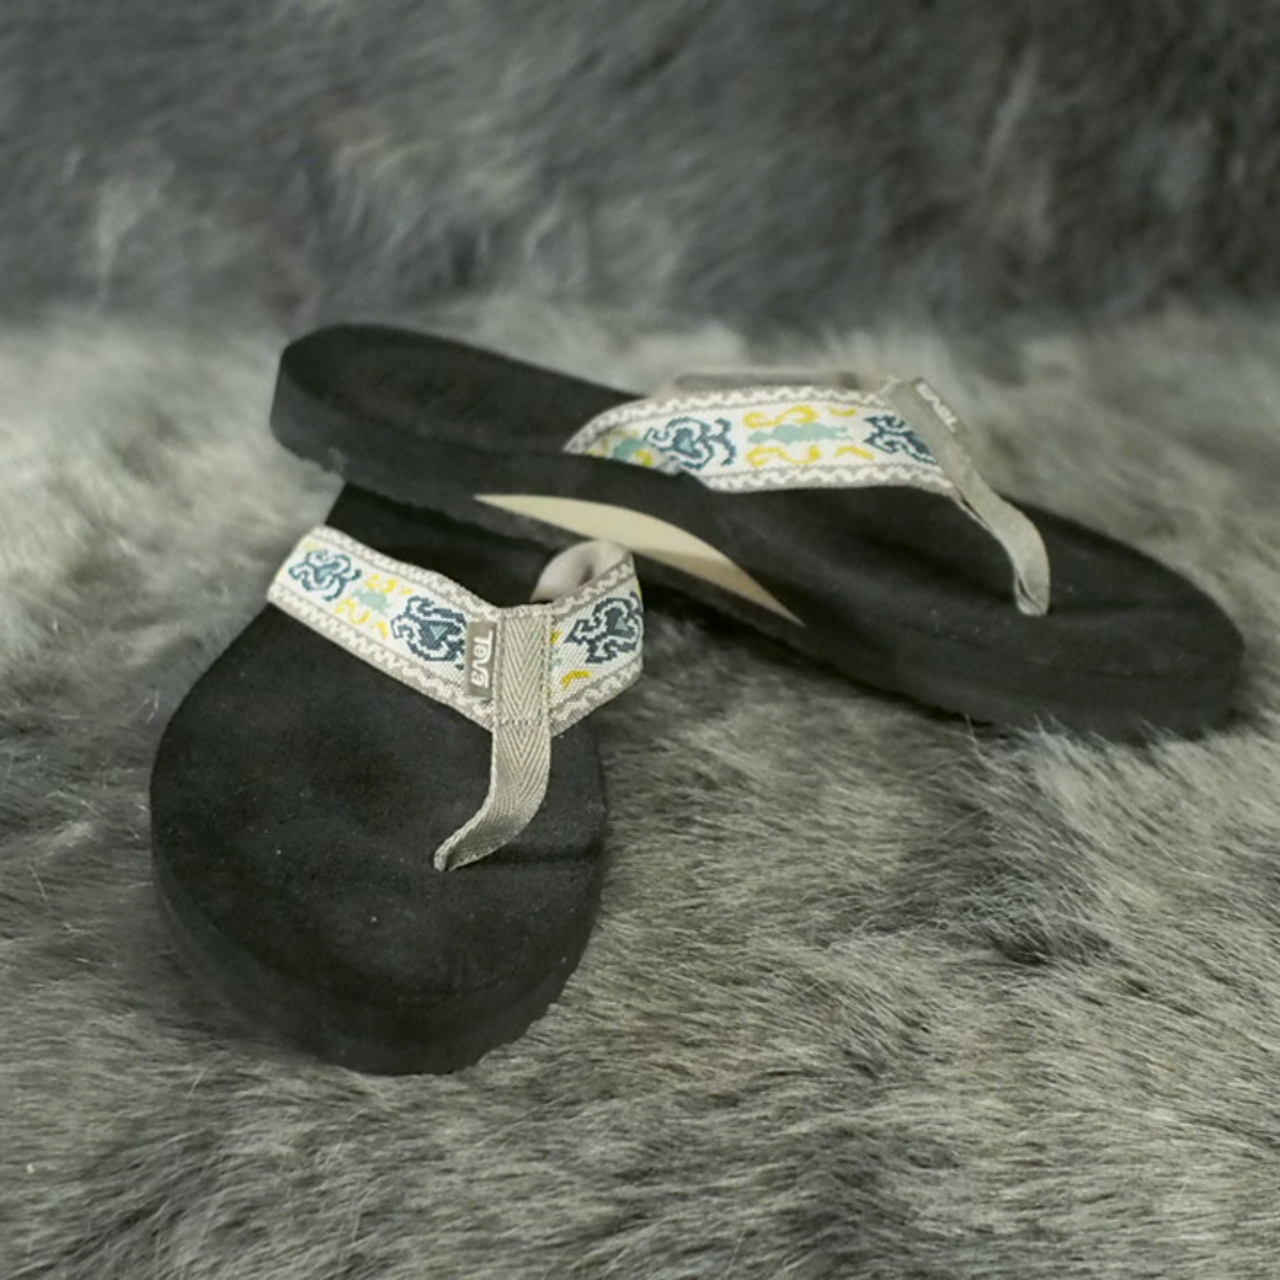 Product Image 1 - Teva flip flops. Great condition,